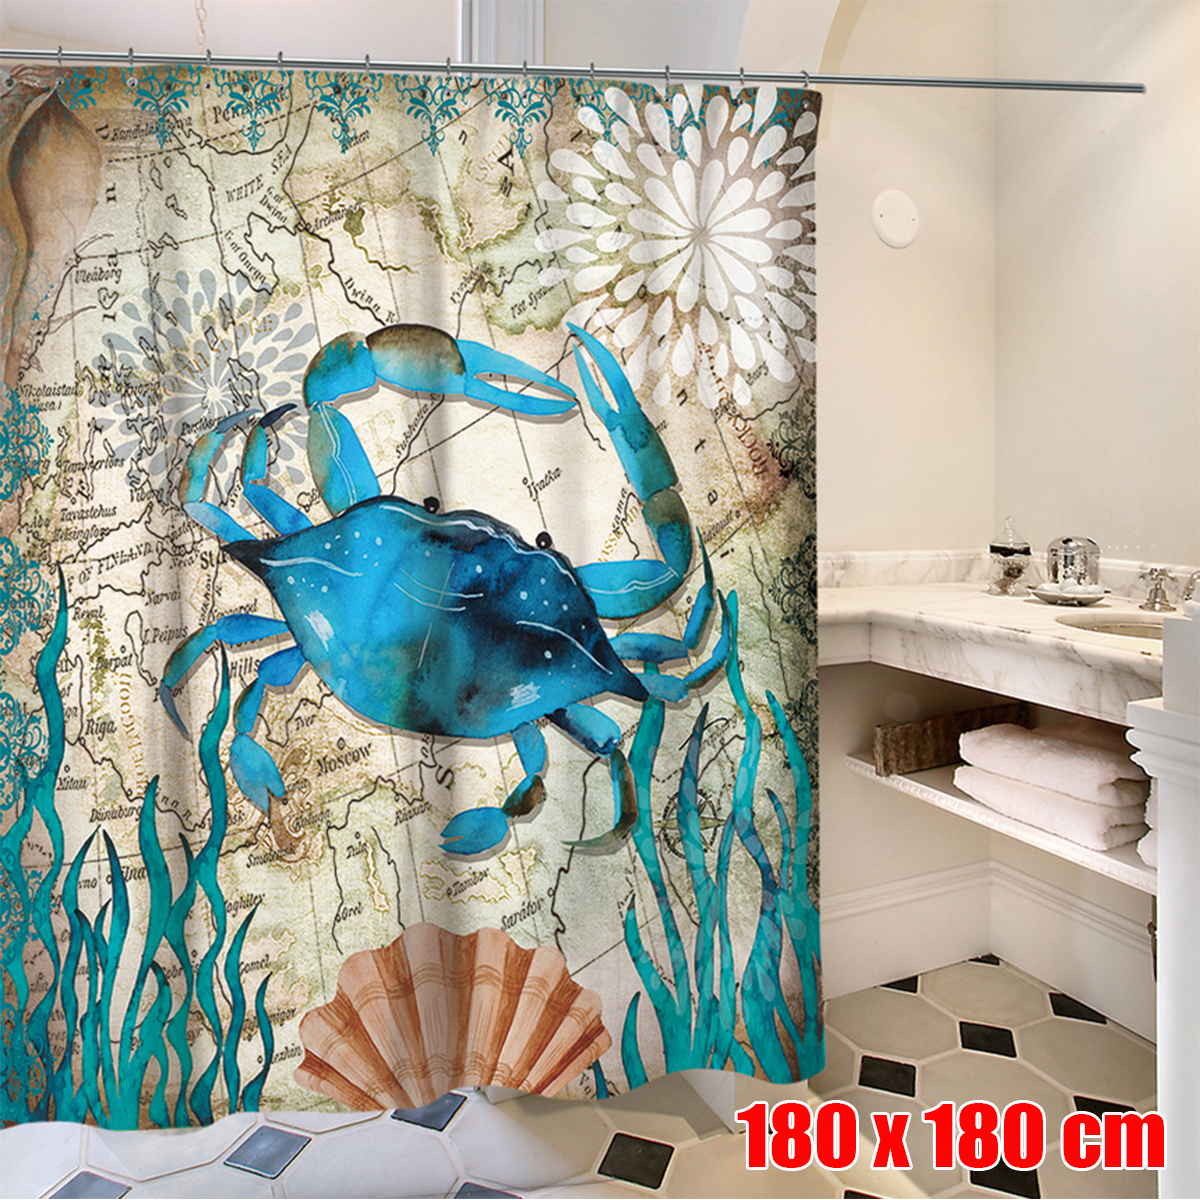 Bathroom Supplies Accessories Whale Fishes Crab At Sea